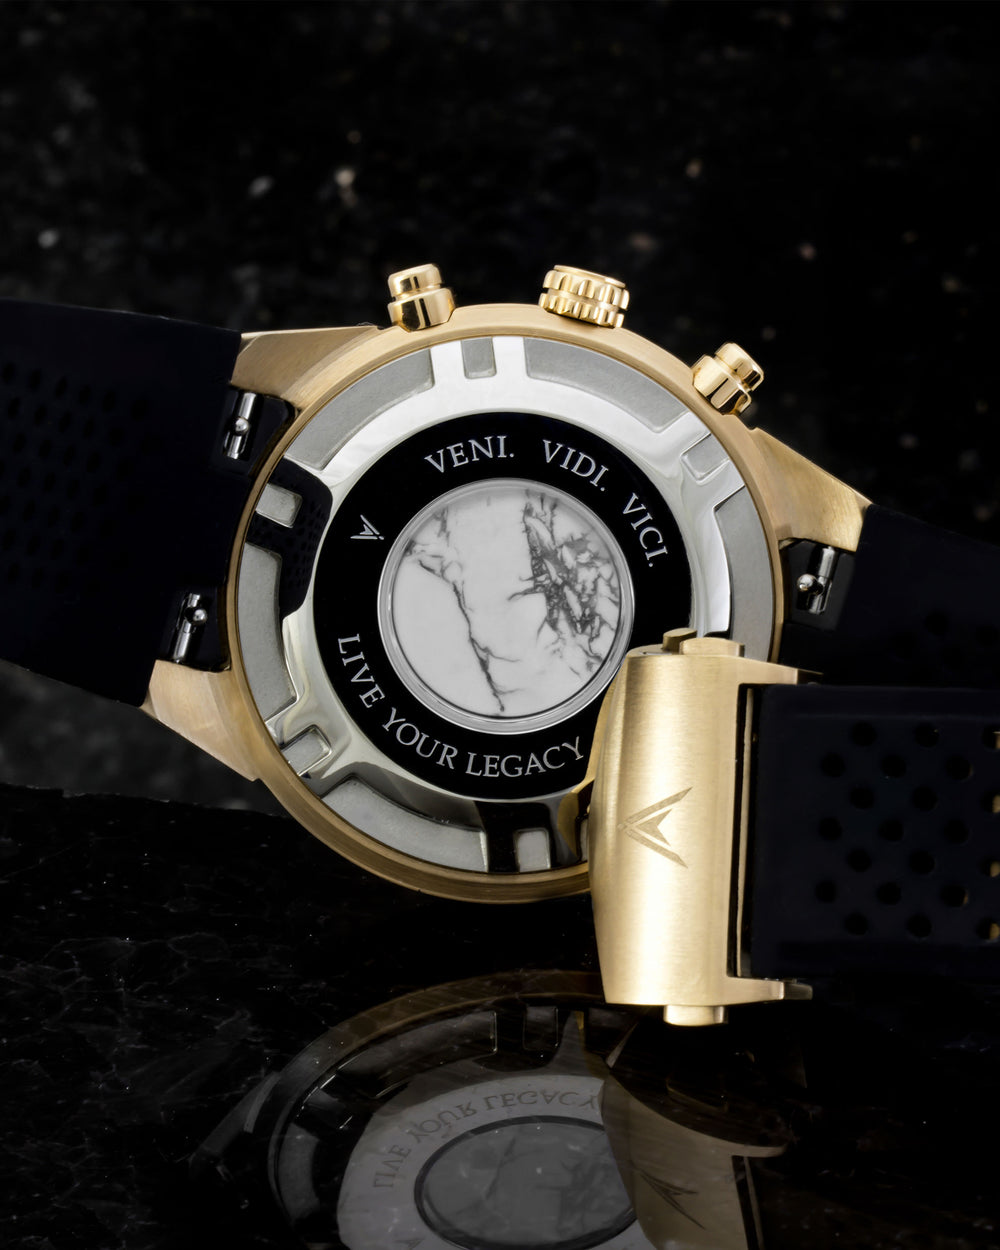 Rogue Italian Marble and 316L Stainless Steel Caseback with Veni Vidi Vici Live Your Legacy EngravingRogue Italian Marble and 316L Stainless Steel Caseback with Veni Vidi Vici Live Your Legacy Engraving